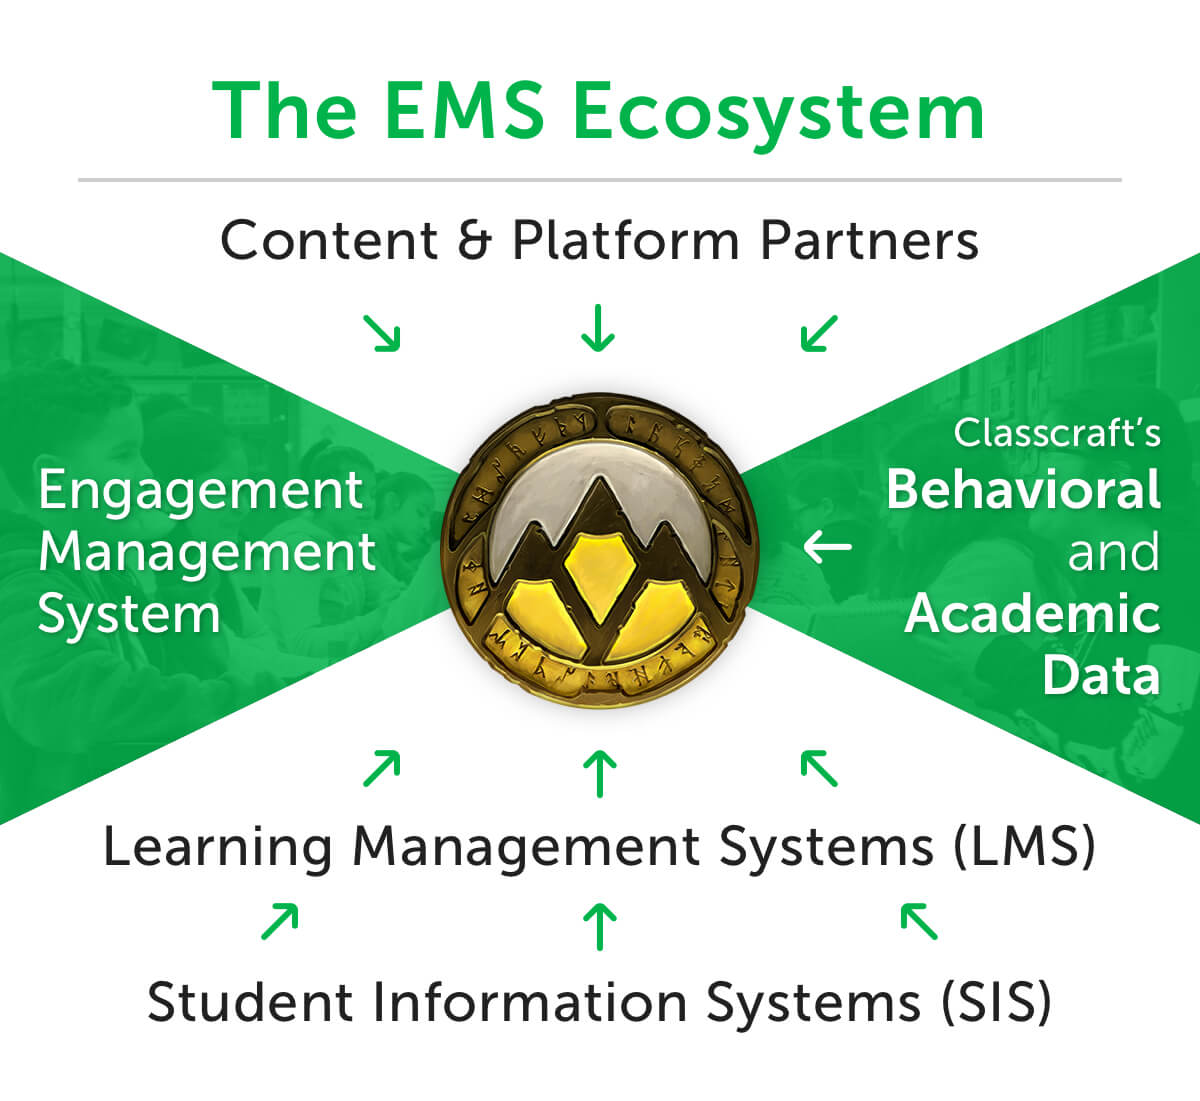 Classcraft EMS Ecosystem infographic showing the different partners to engage with the whole student